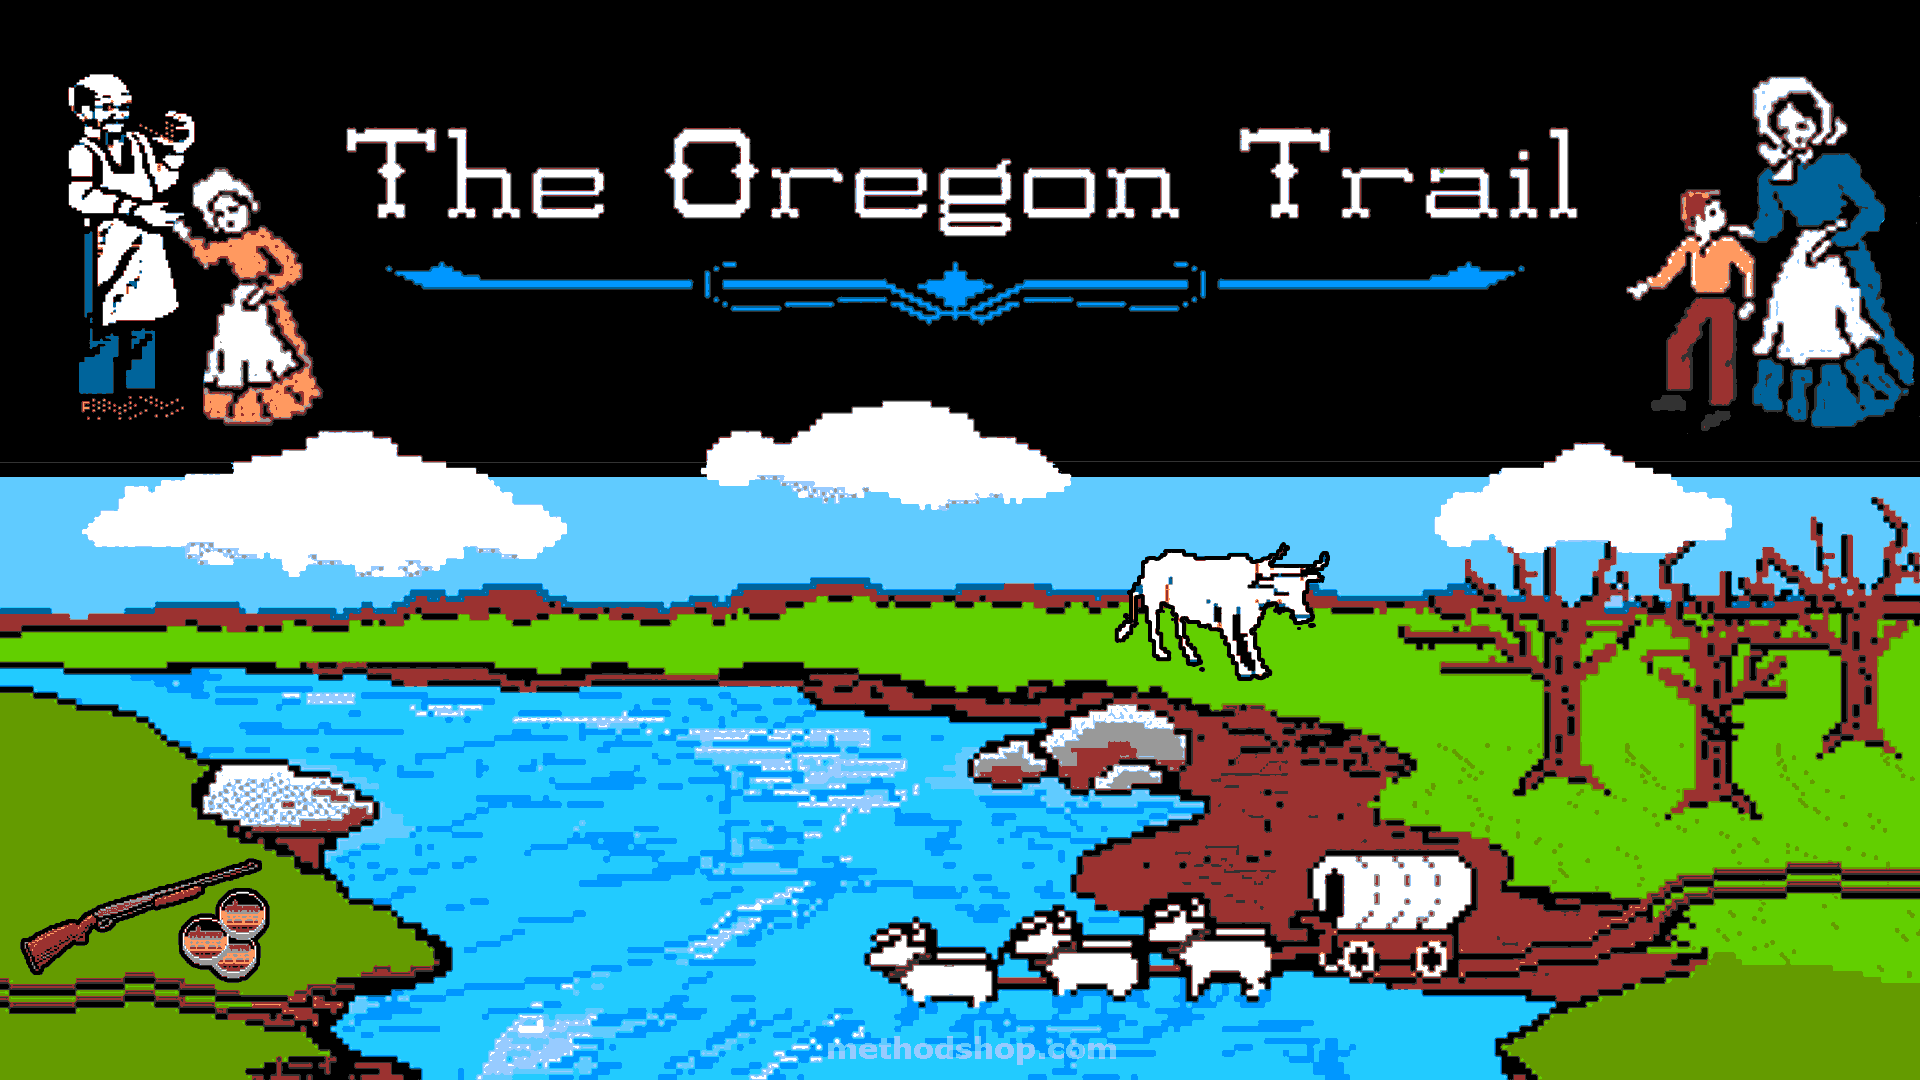 Screenshot from the classic 80s game The Oregon Trail. Available to play online.